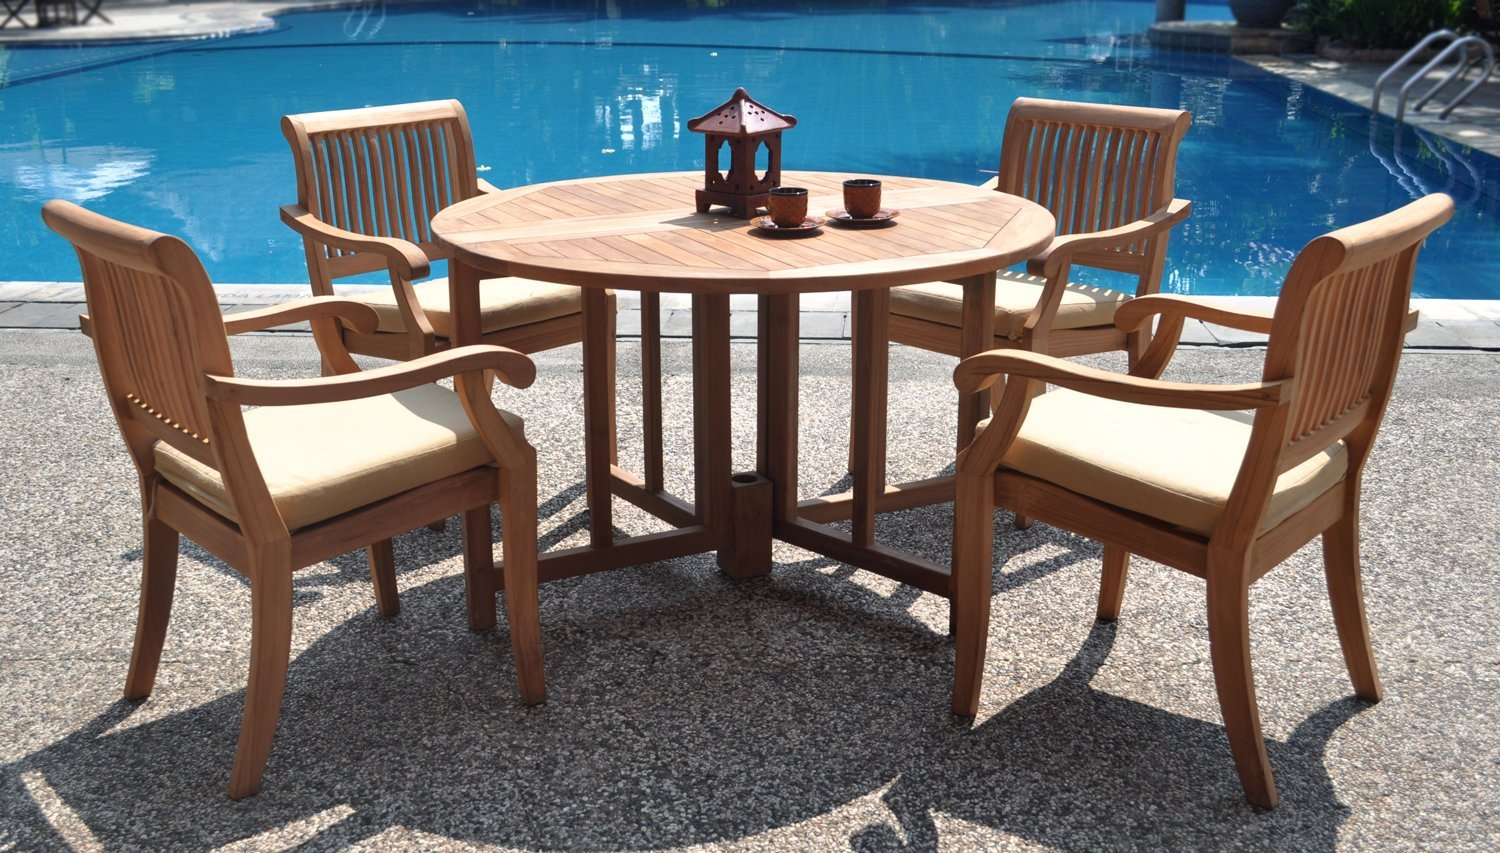 Round Table Patio Furniture Sets 5 Piece Luxurious Grade A Teak Dining Set 48